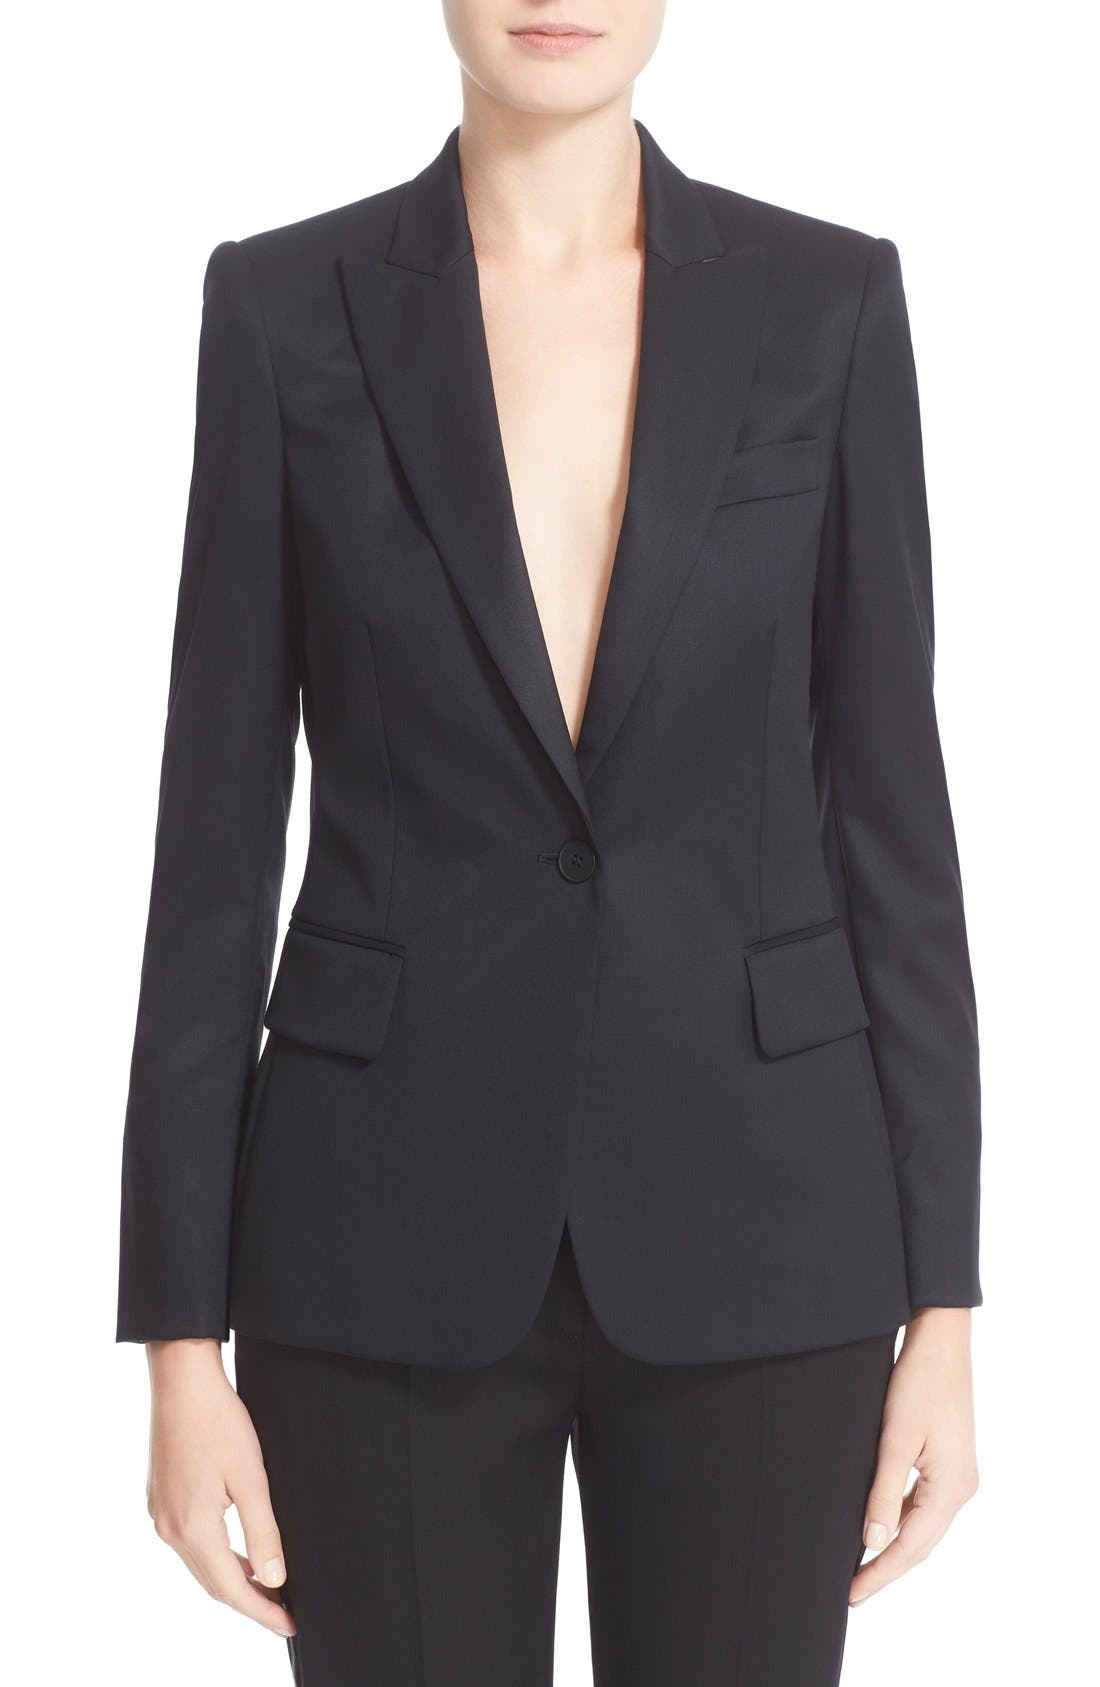 Main Image - Stella McCartney PS1 One-Button Wool Jacket (Nordstrom Exclusive)